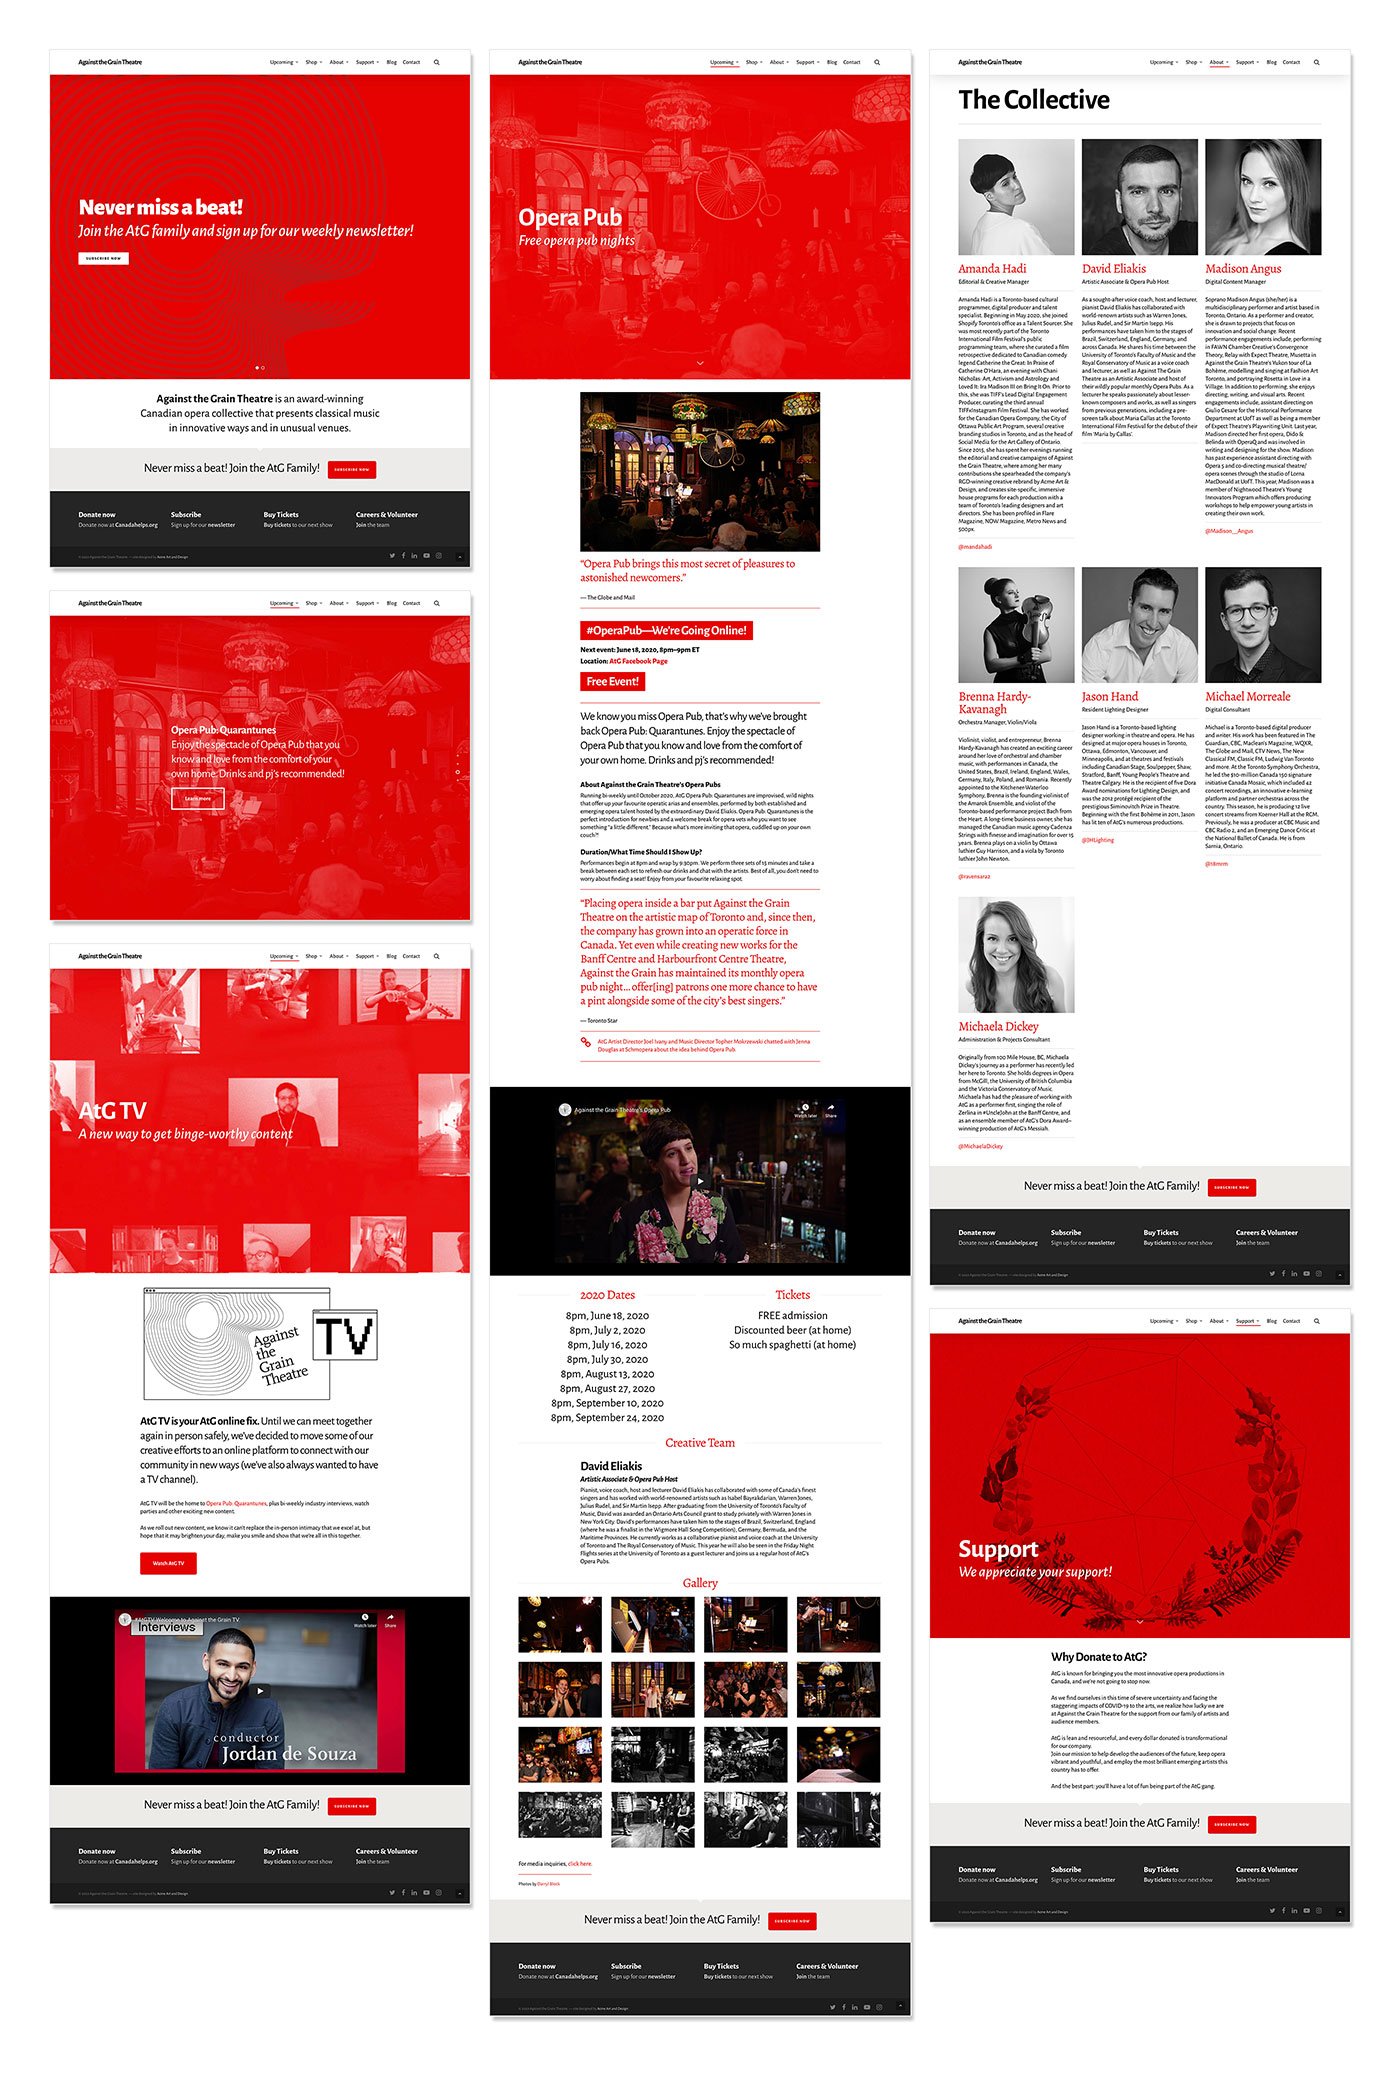 Thumbnail images of web pages from the Against the Grain Theatre website